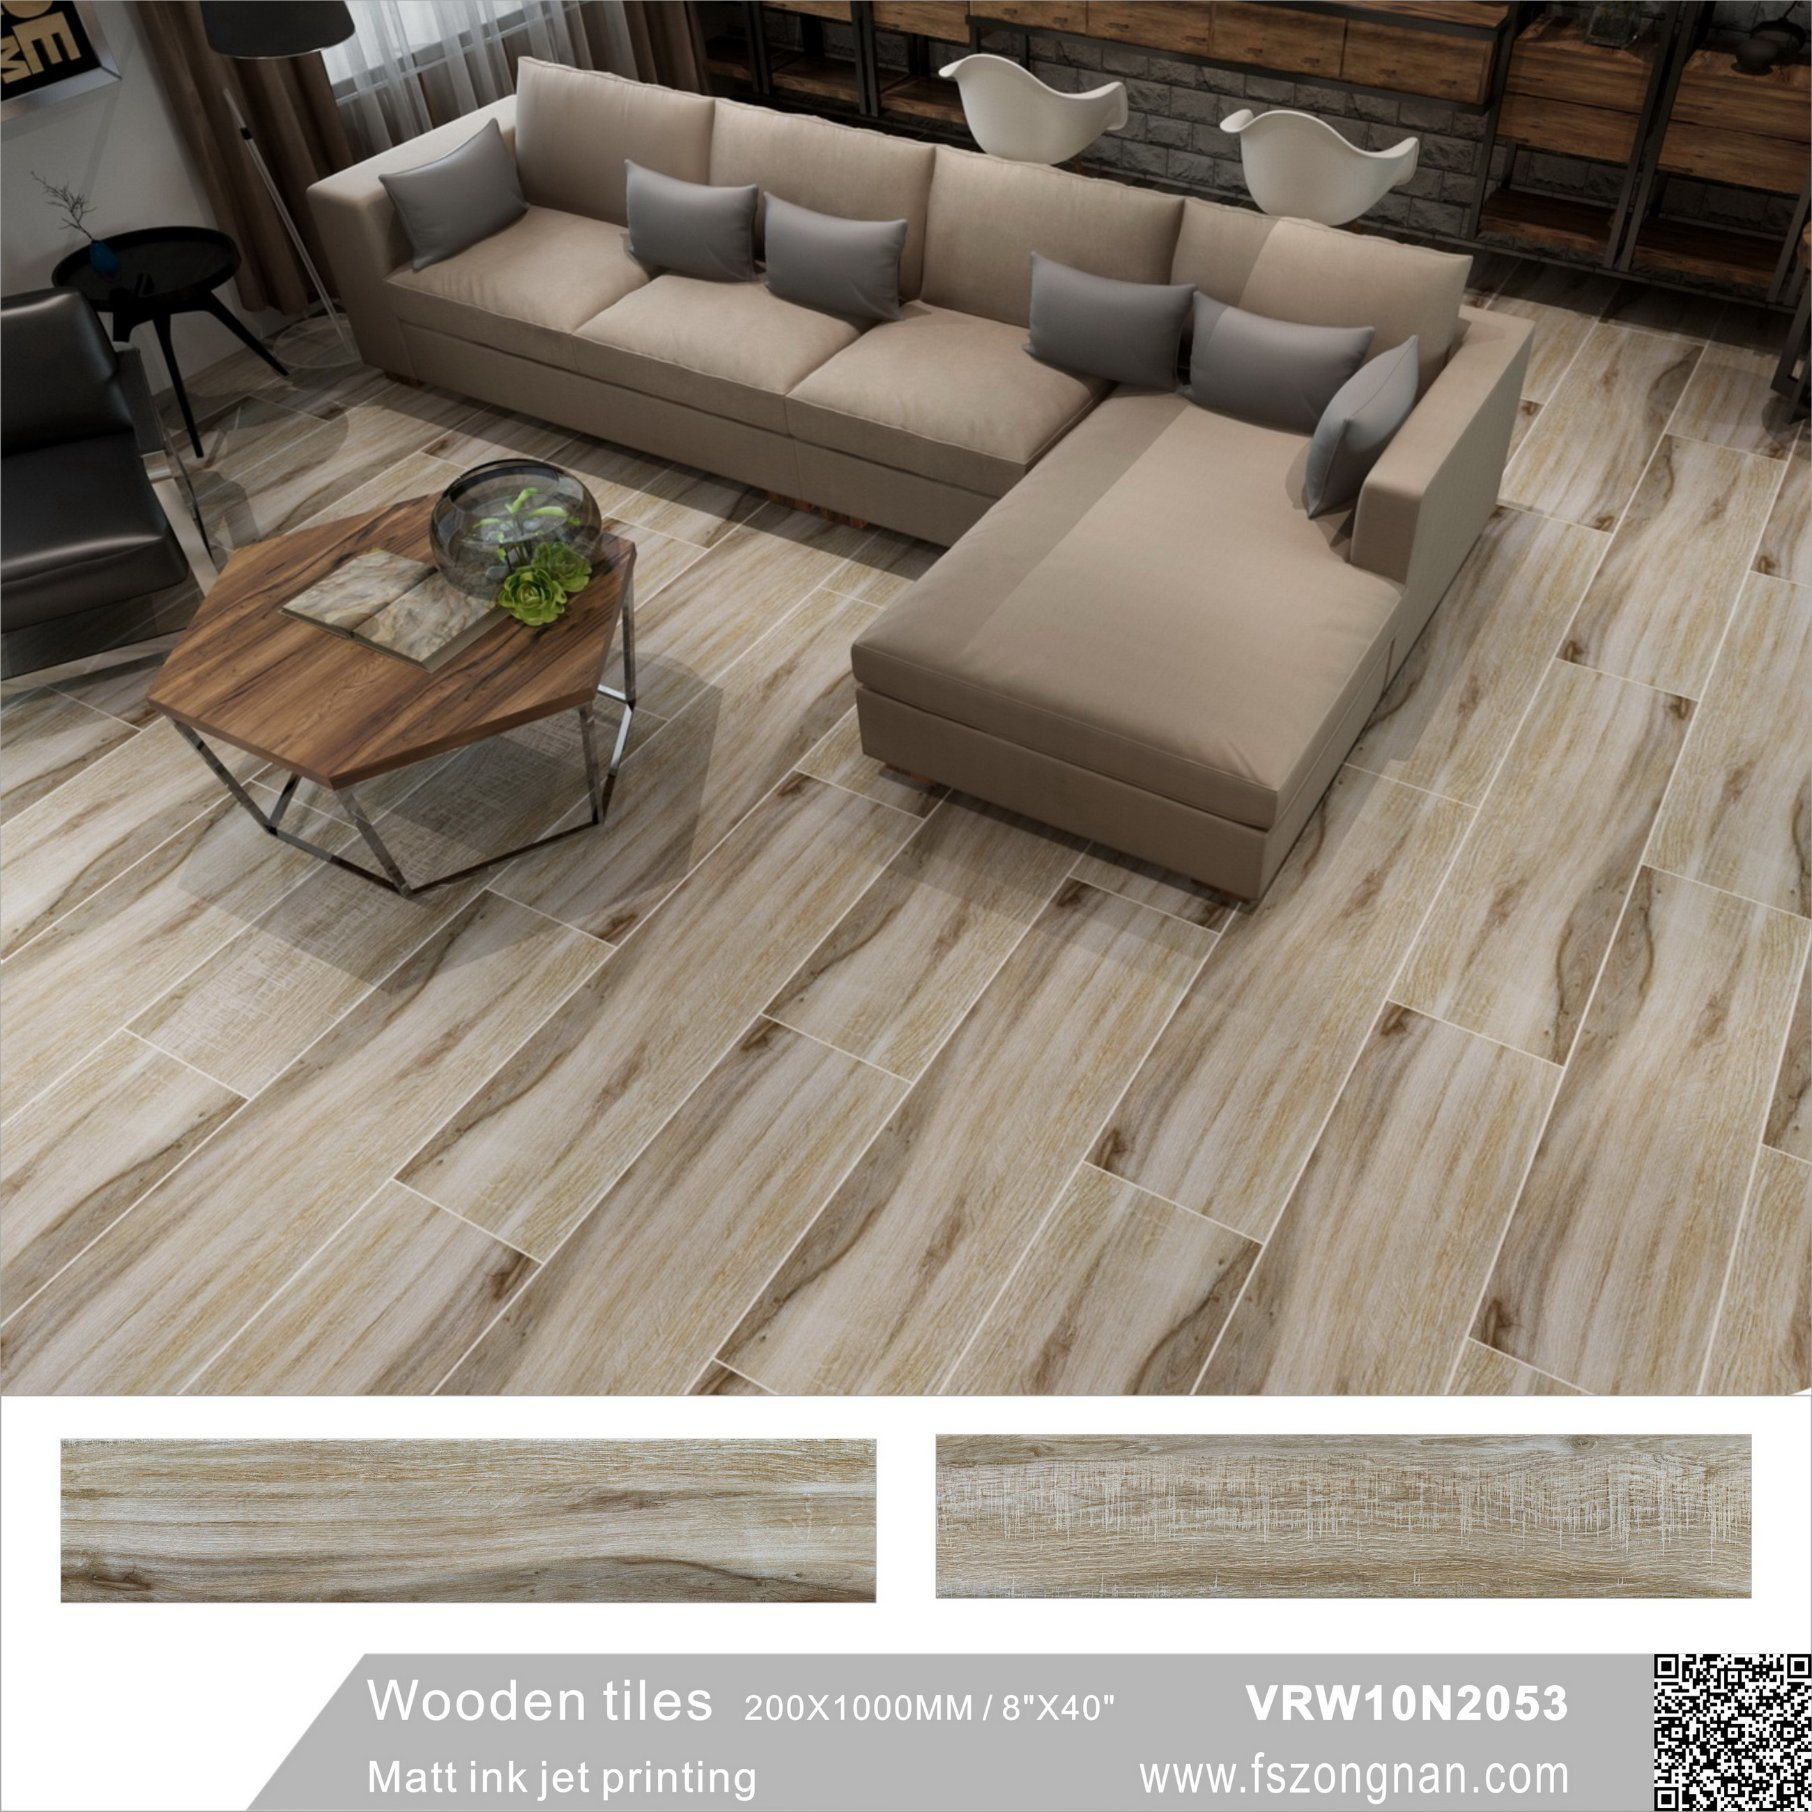 Hot Item Building Material Inkjet Wood Tile Ceramic Floor Vrw10n2053 200x1000mm